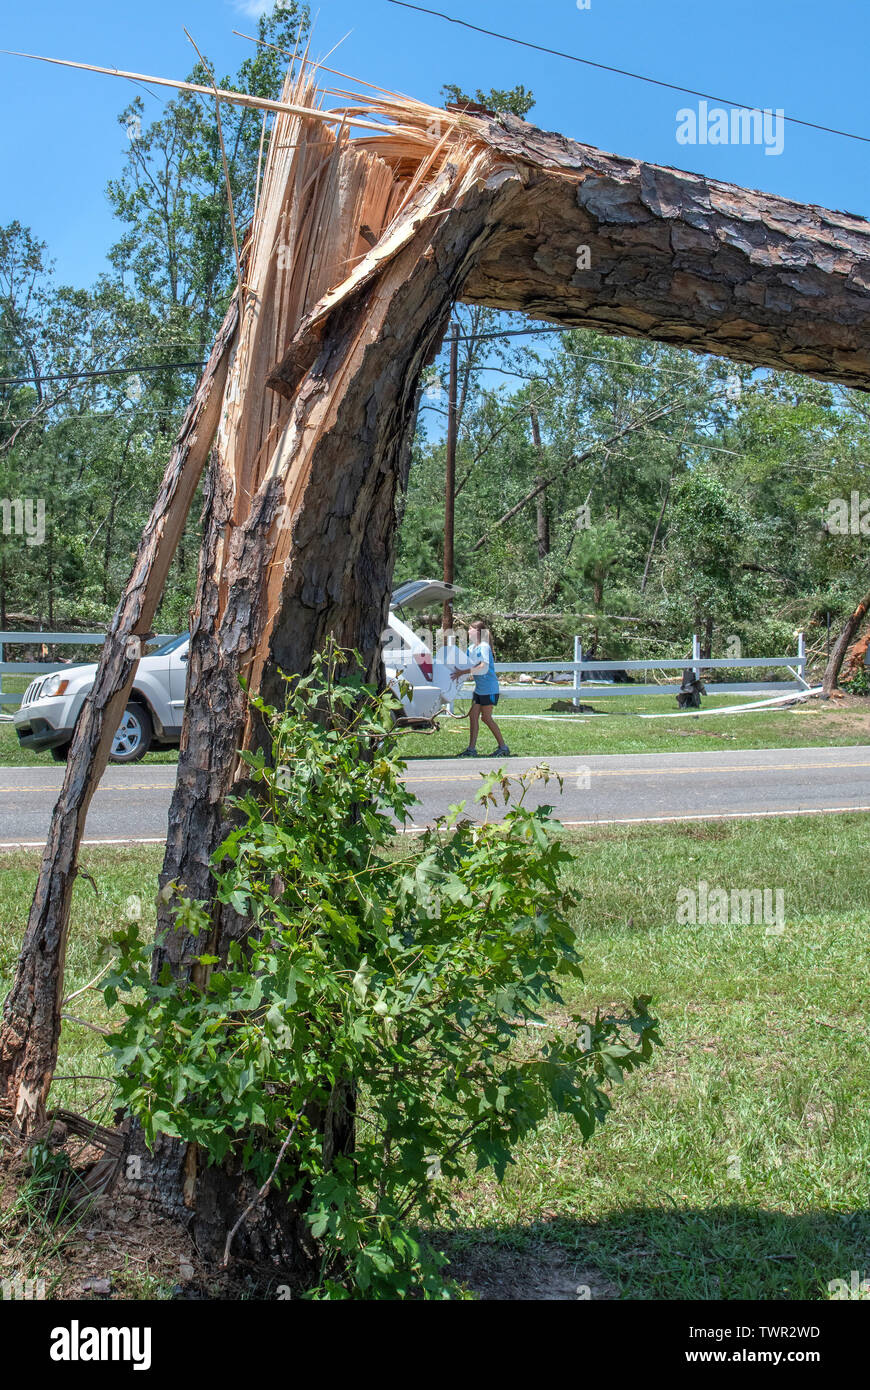 BENTON LA., U.S.A., JUNE 20, 2019: Heavy property damage but no injuries resulted from an EF2 tornado, which struck this north Louisiana neighborhood Stock Photo